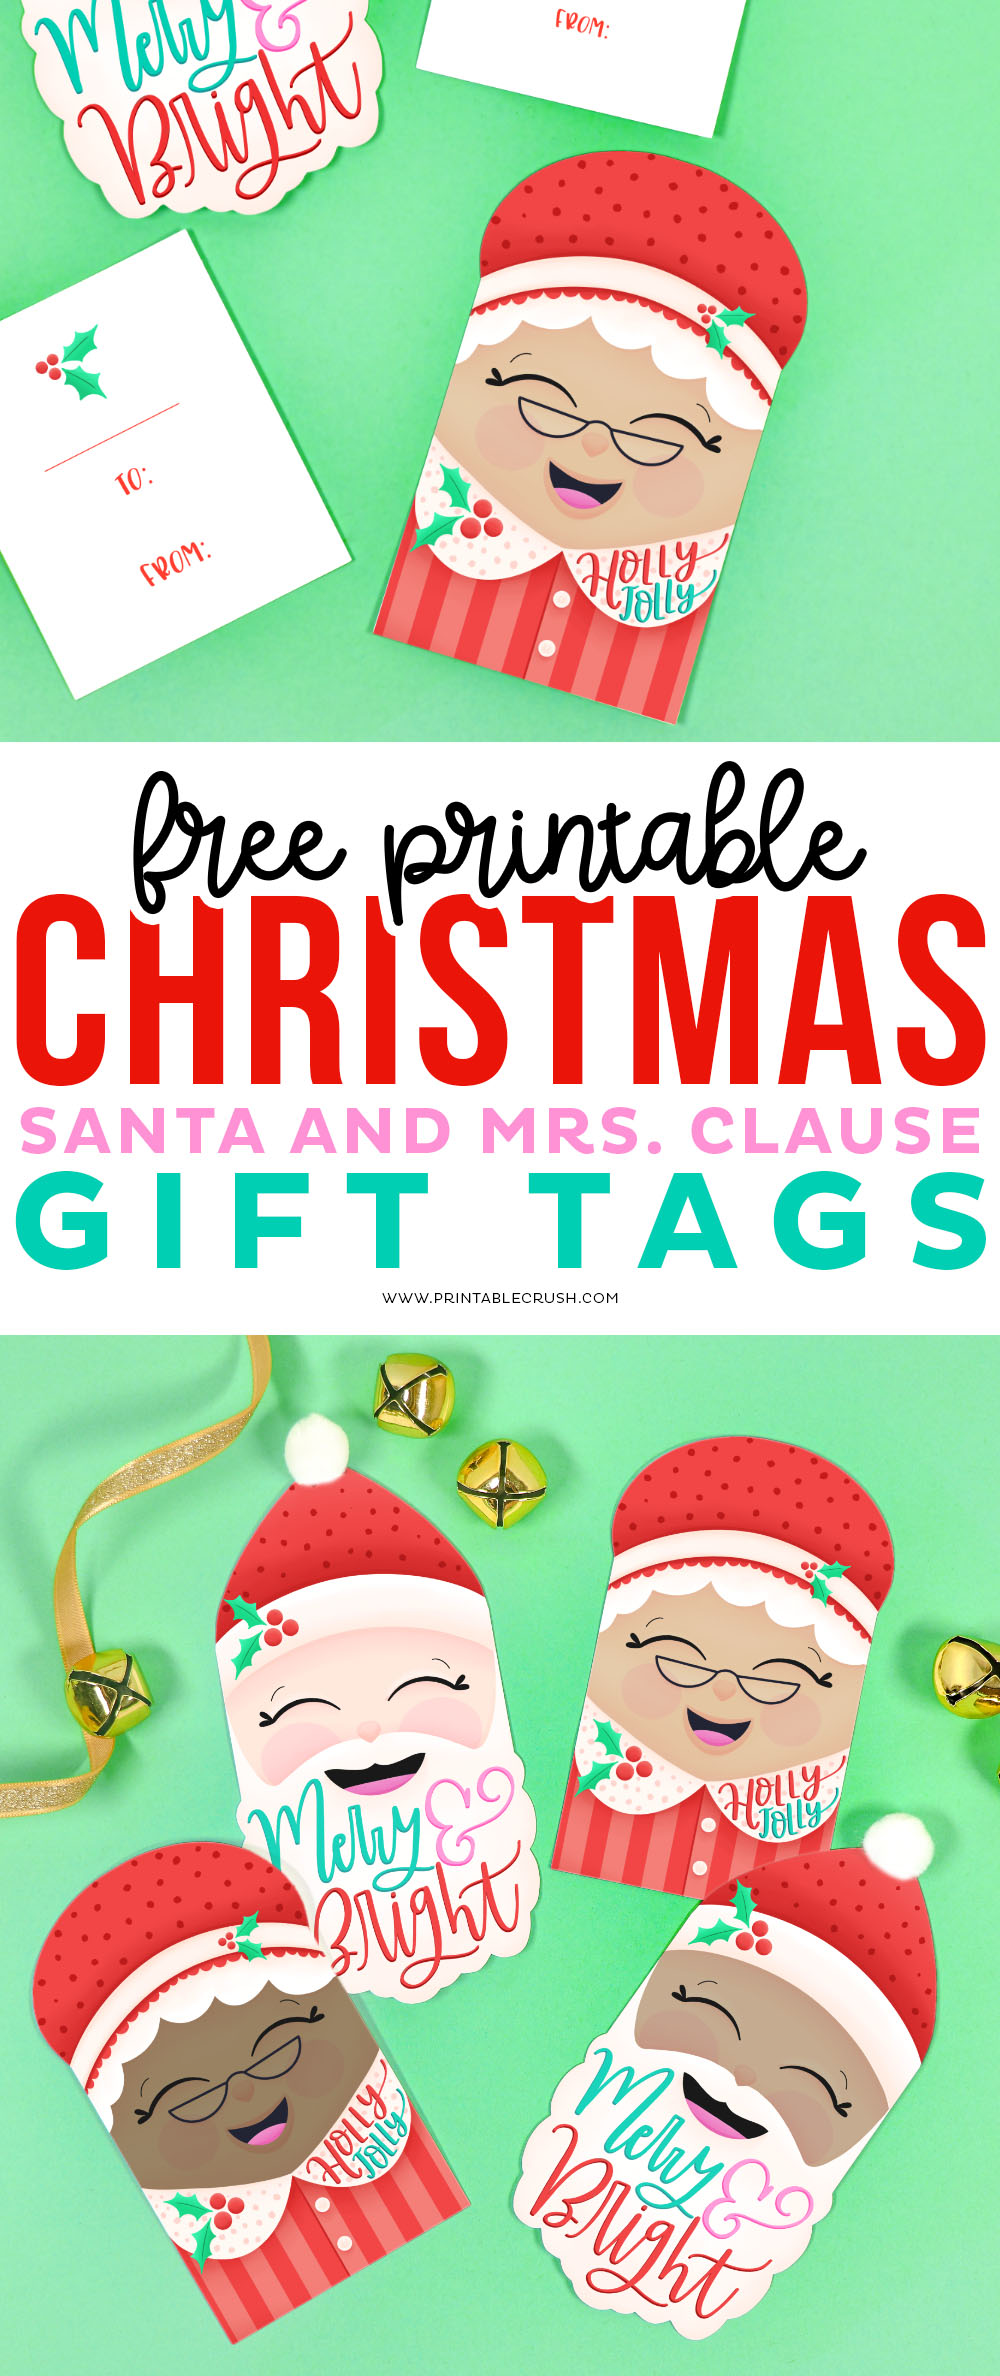 Free Santa and Mrs Claus Gift Tags - Printable Crush via @printablecrush